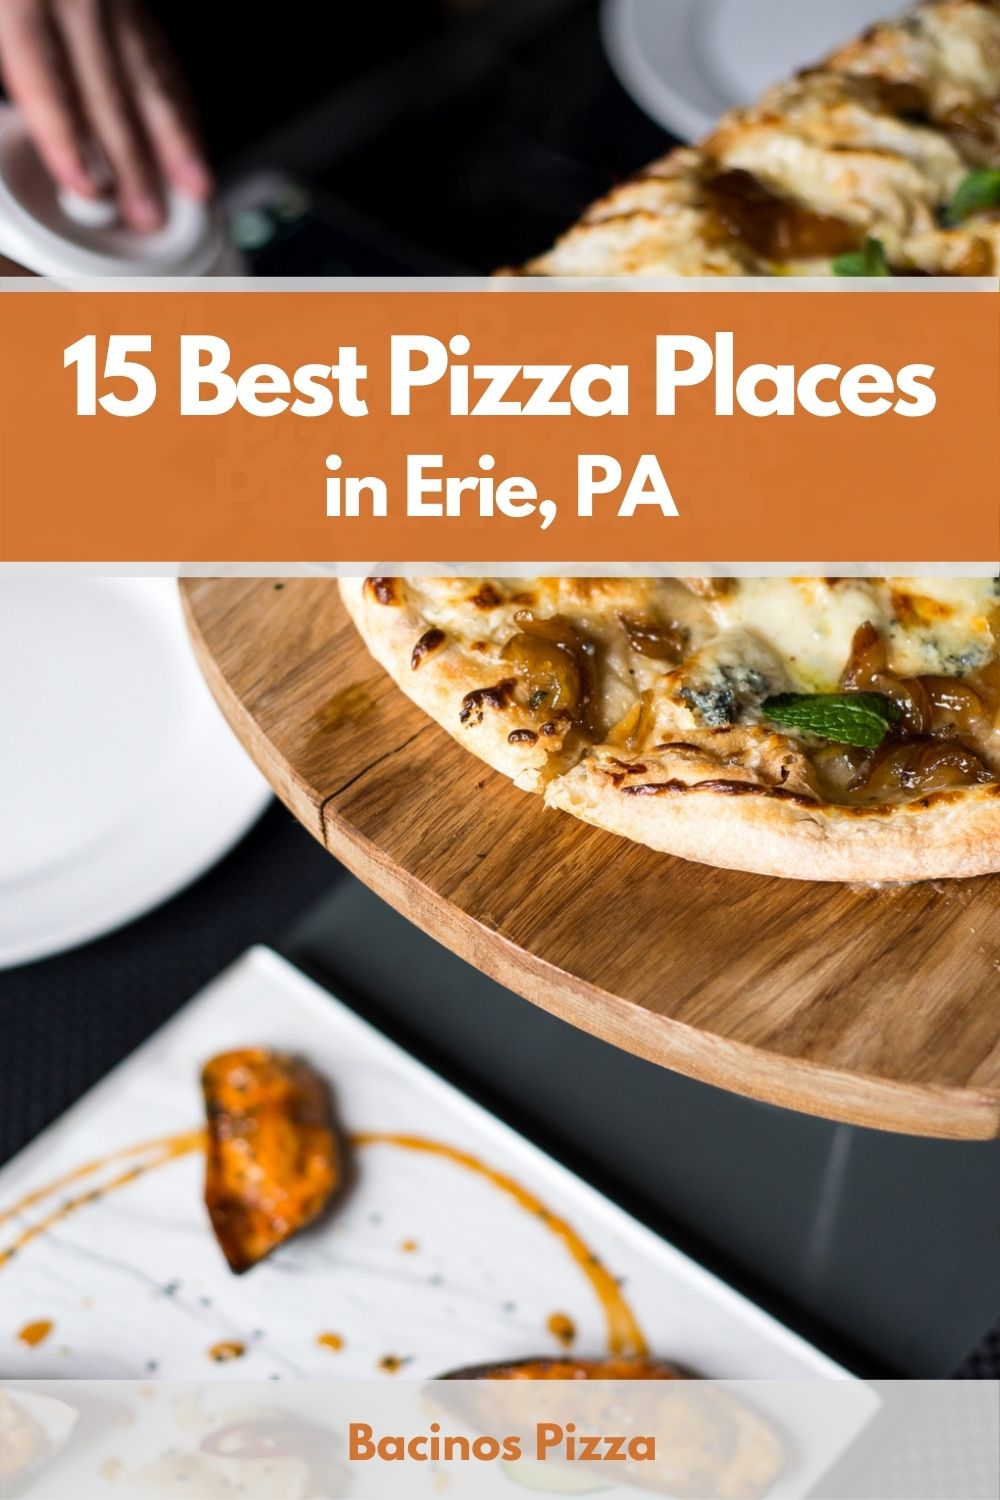 15 Best Pizza Places in Erie, PA pin 2